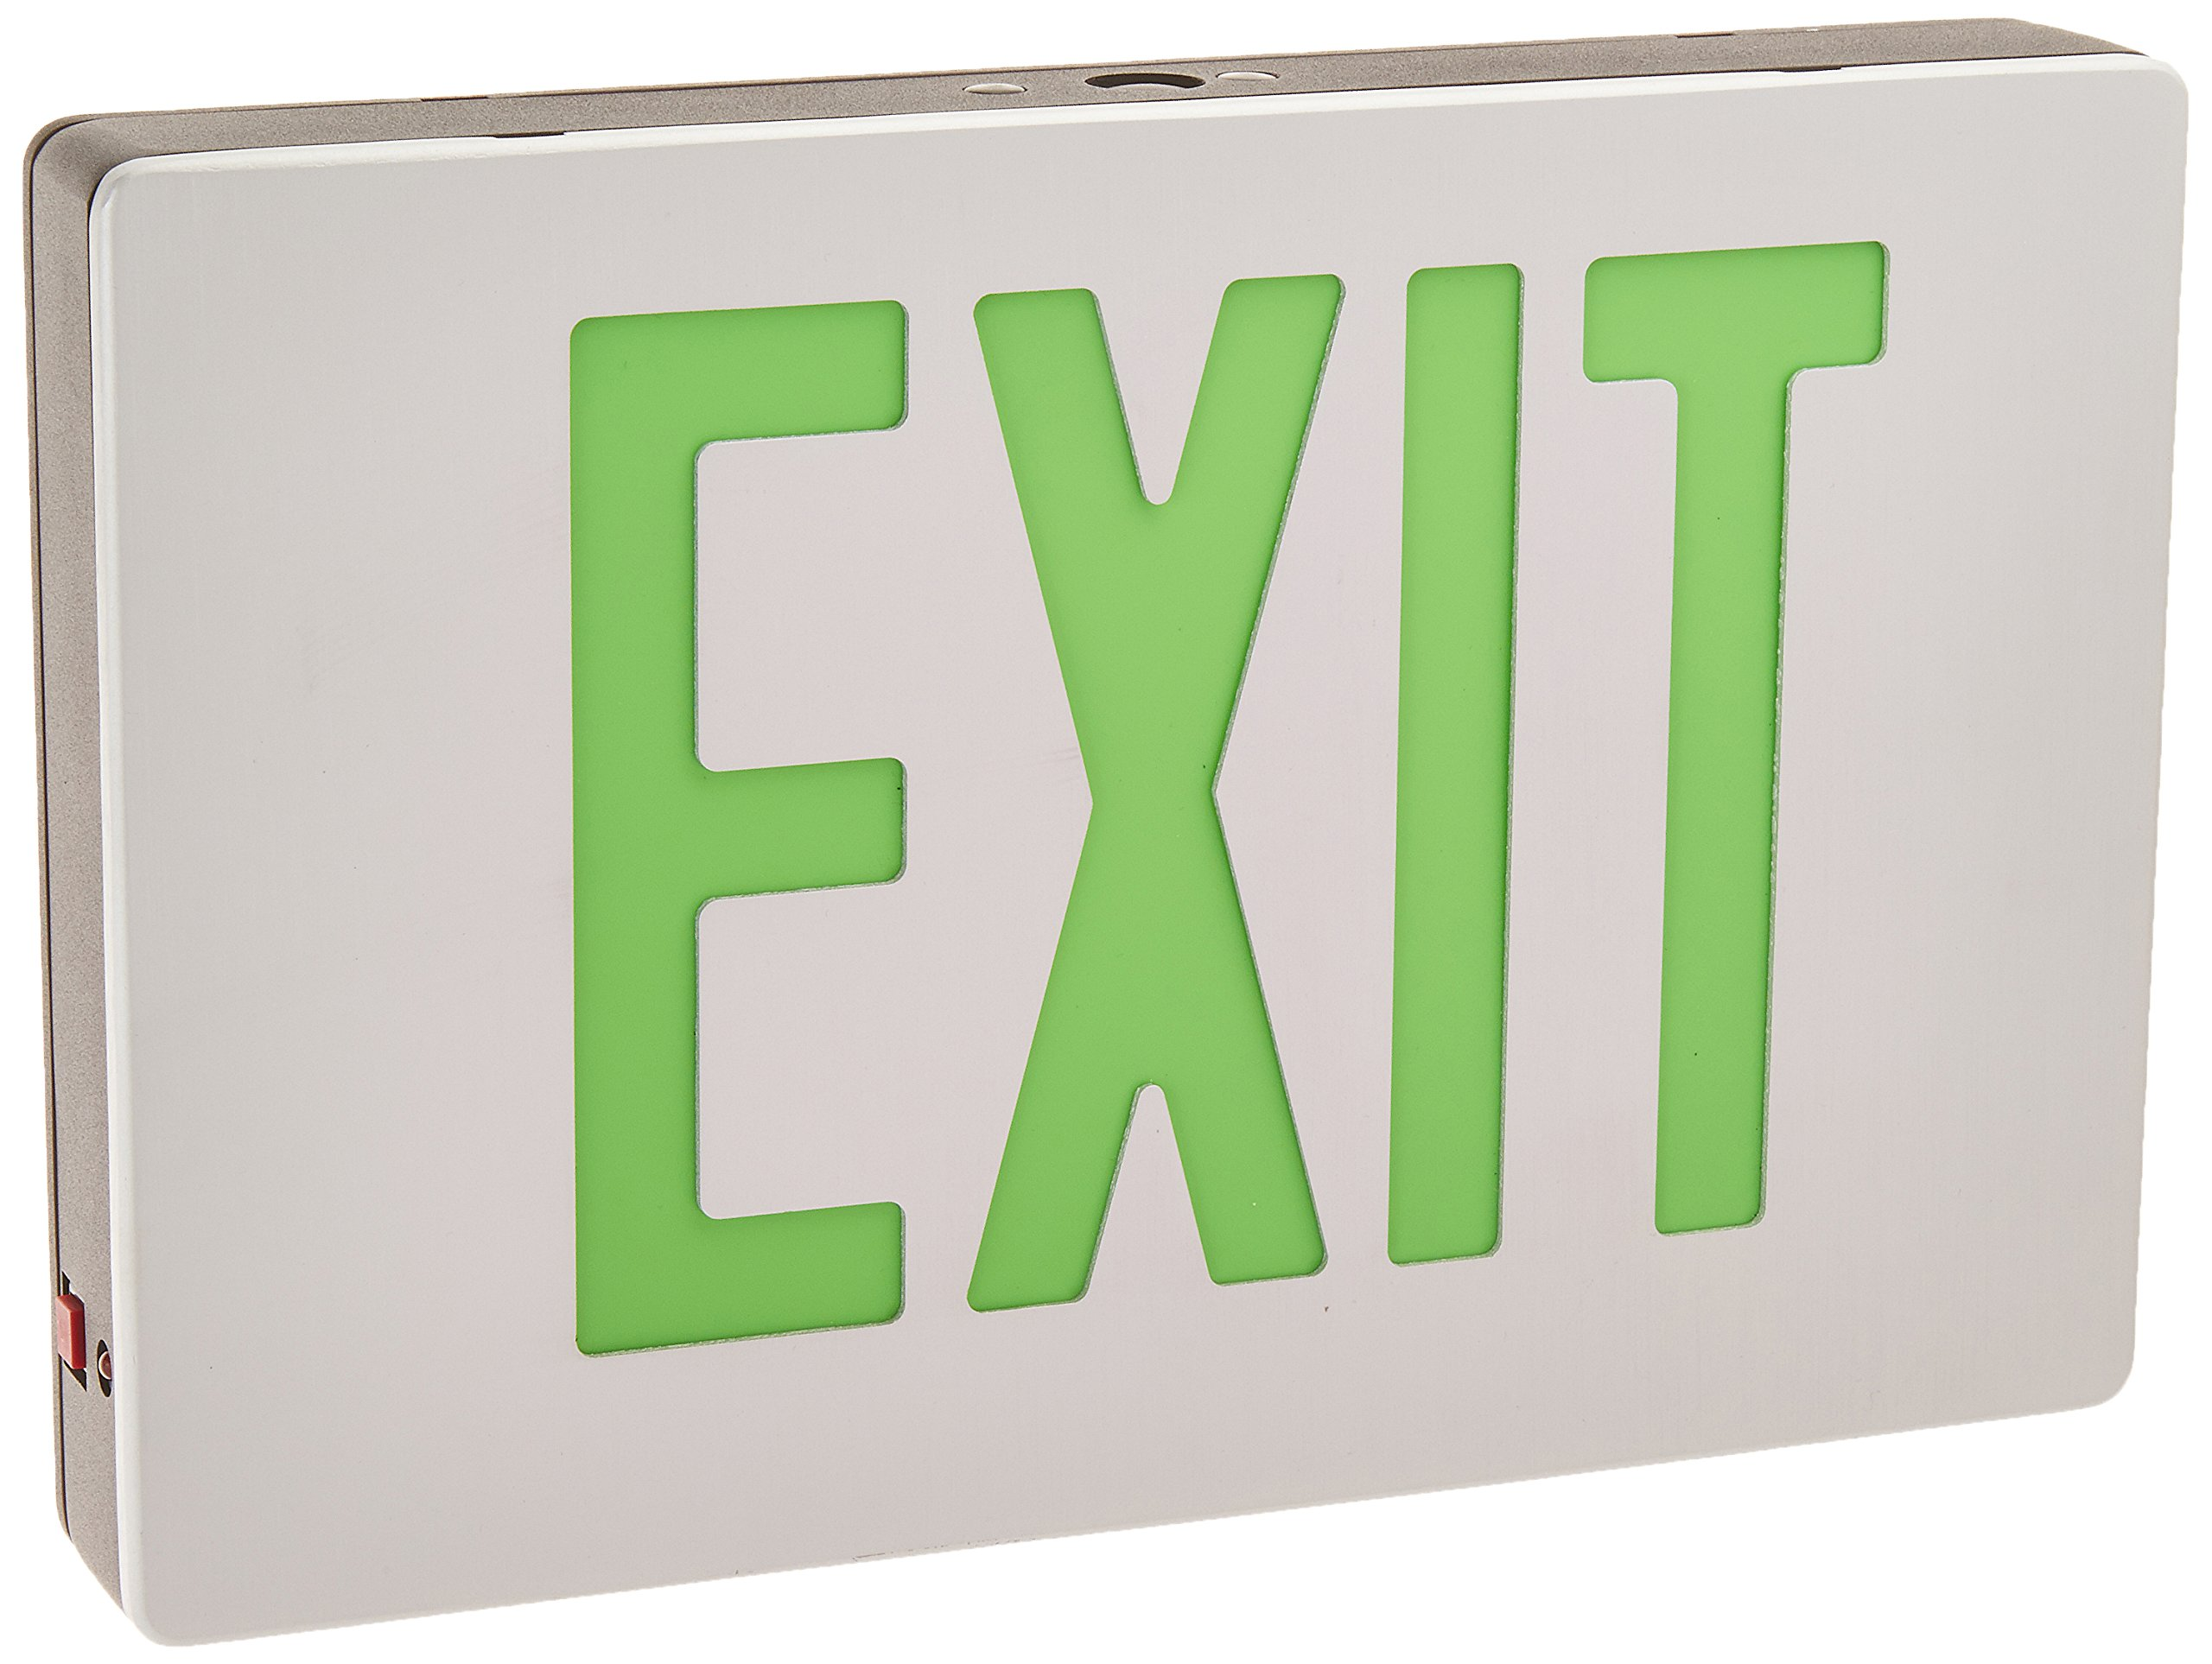 Royal Pacific RXL15GBA Single Face, Die-Cast Exit Sign, Brushed Aluminum with Green Letters